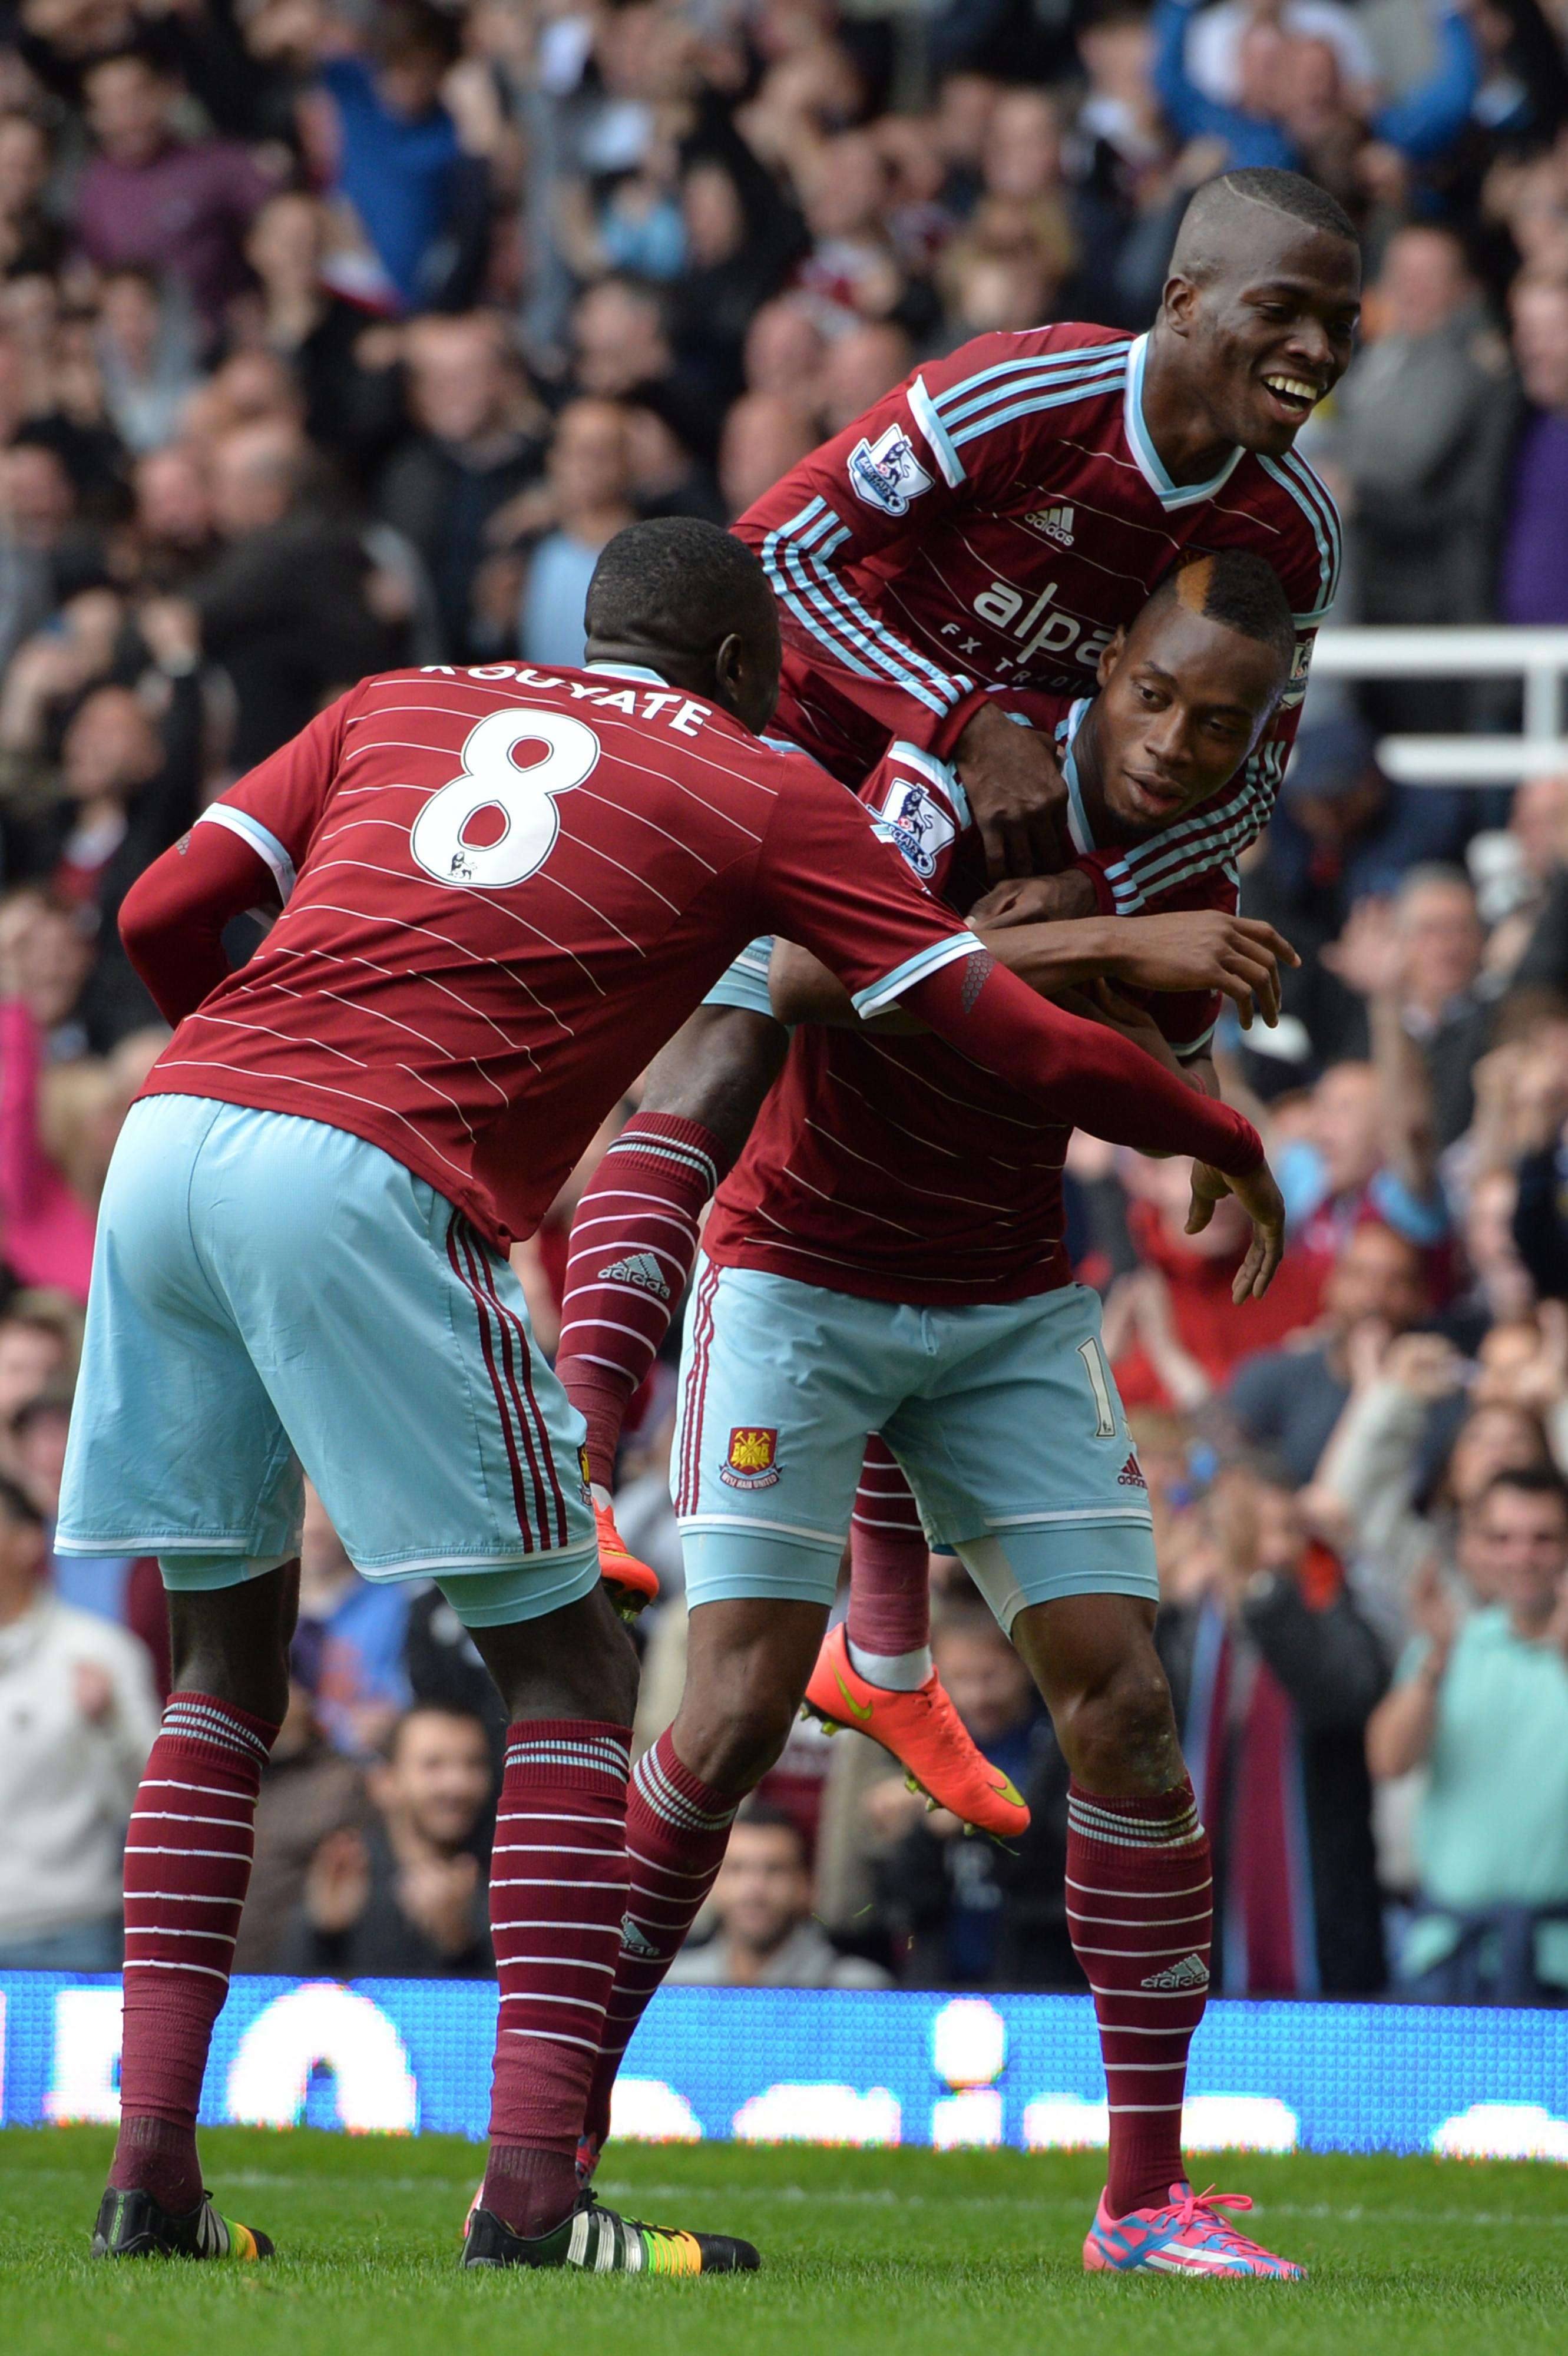 Jugadores del West Ham festejan la victoria. Foto: AFP